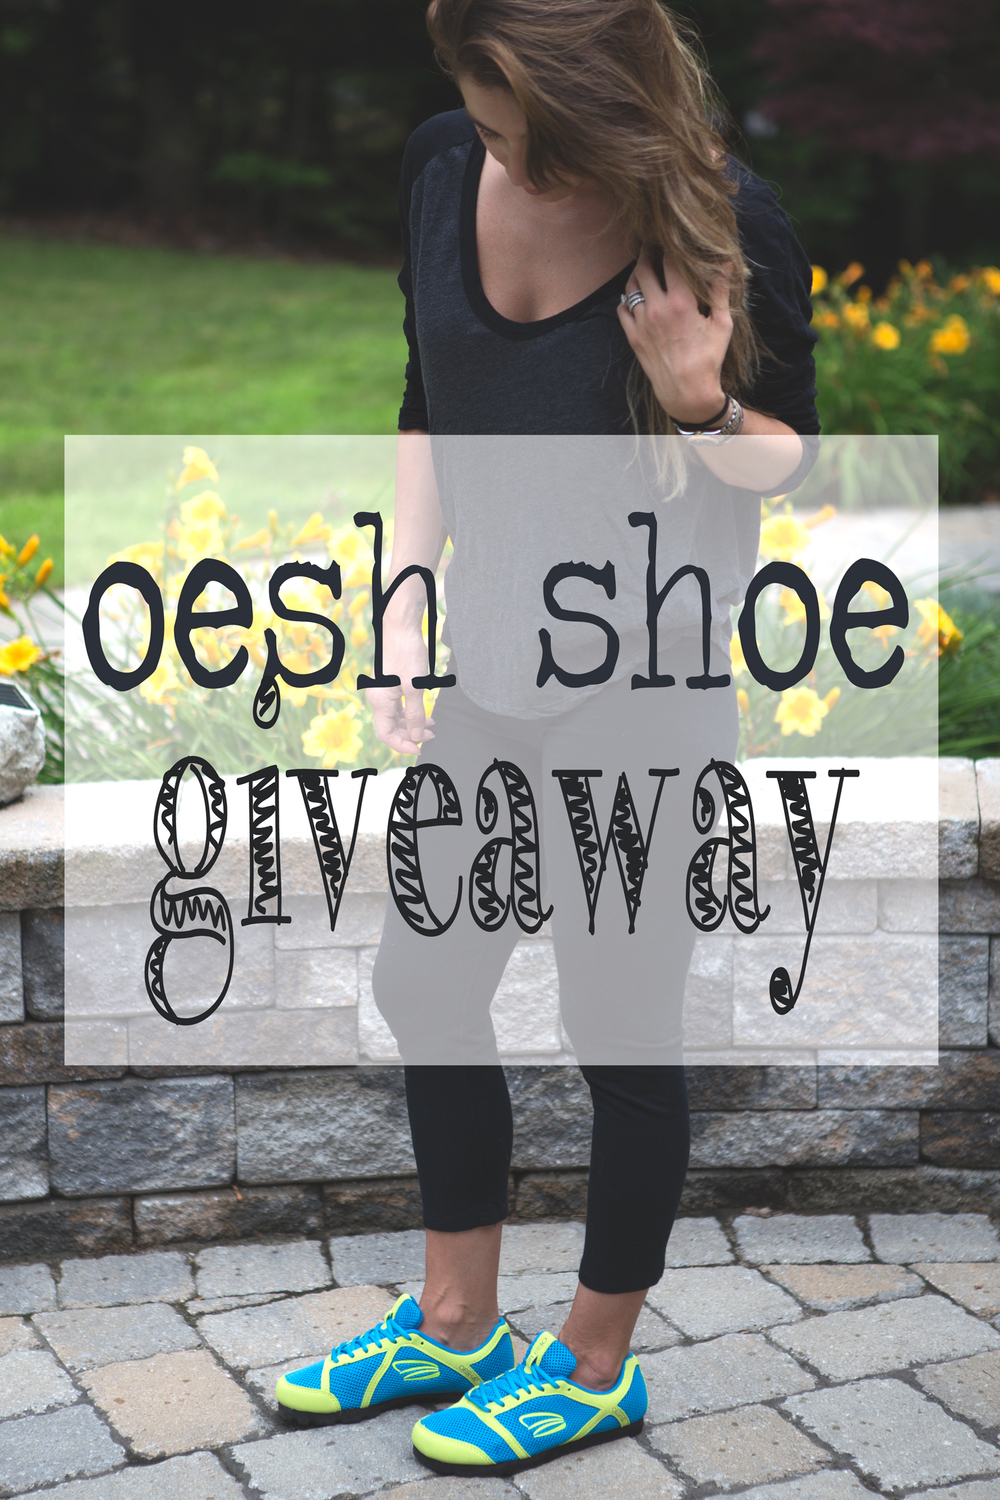 Pin it! Oesh sneaker giveaway